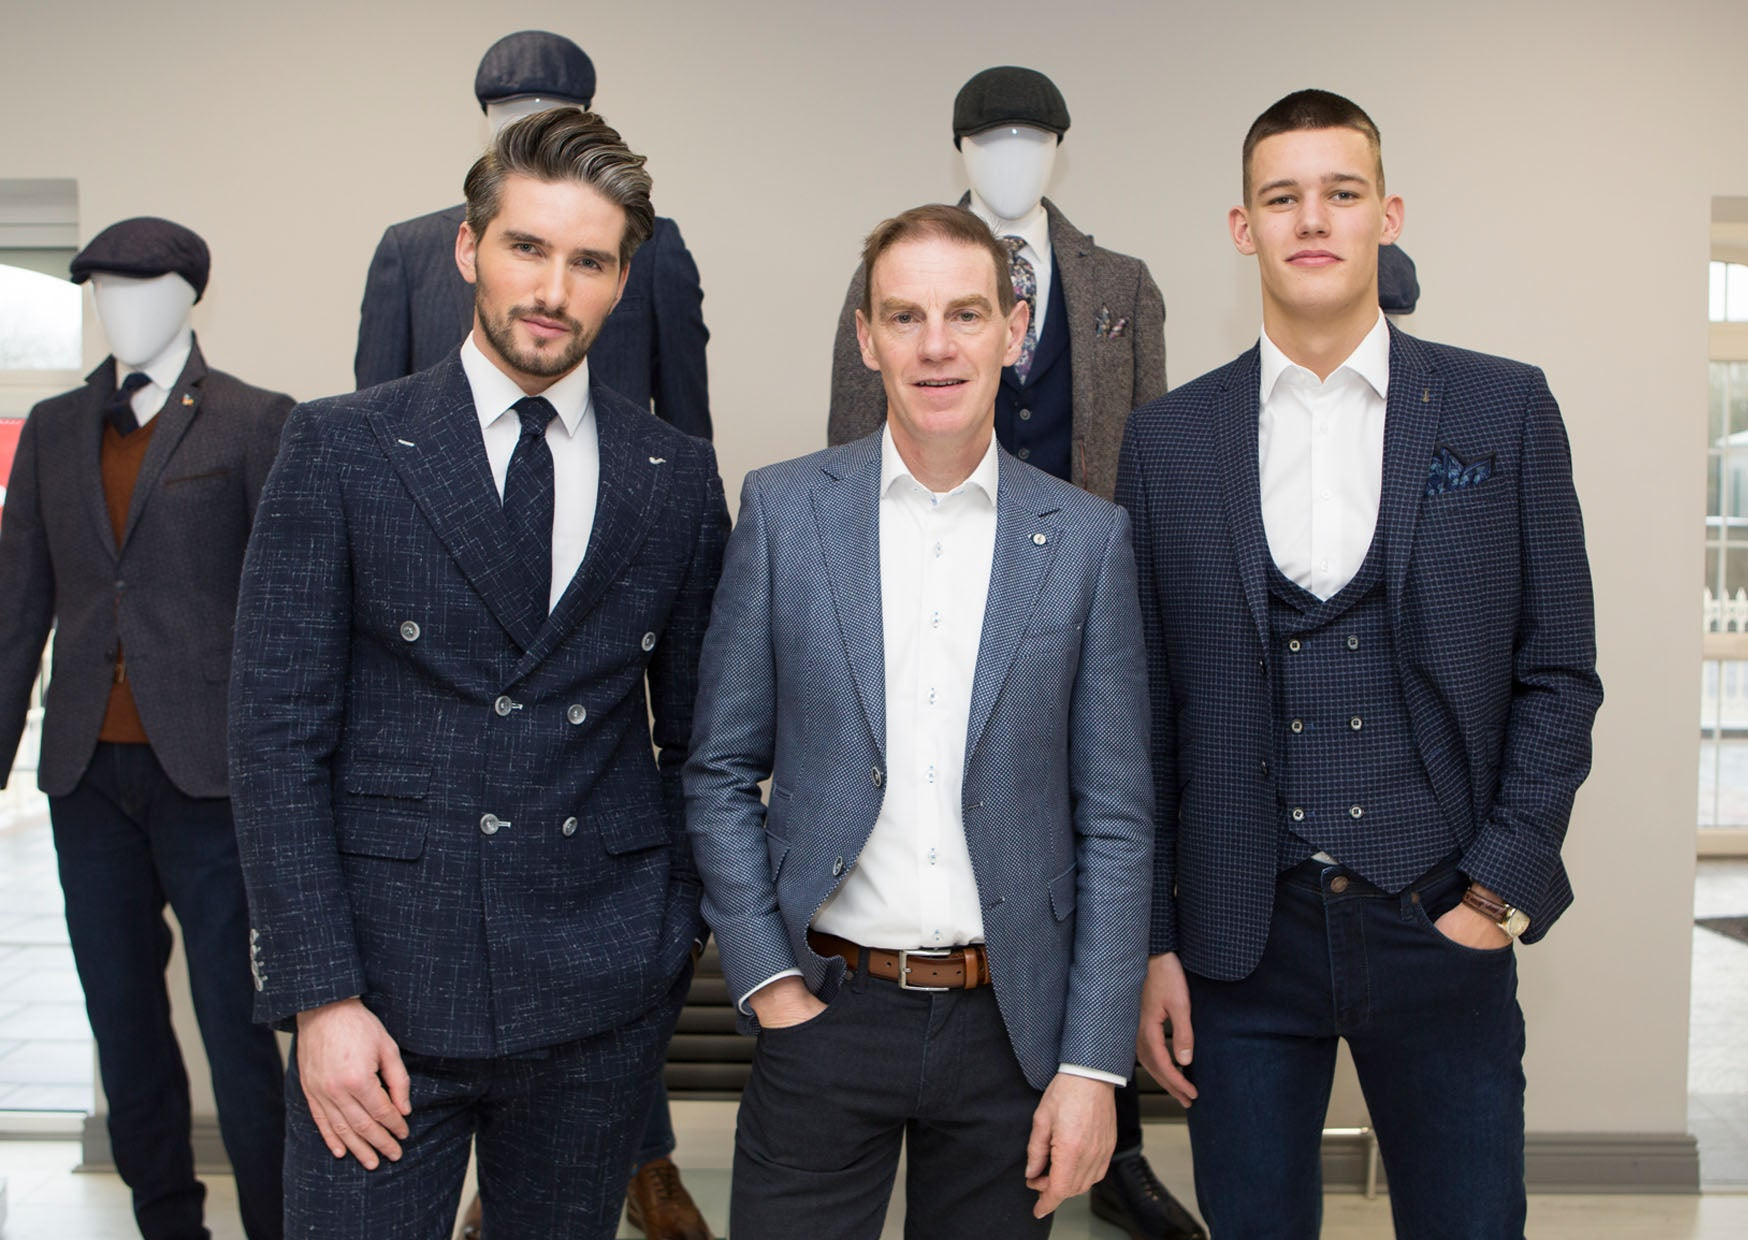 Benetti Menswear, Benetti, Charlie Clinch, Not Another Agency, Assets Model Agency, Benetti Suit, Showcase Event